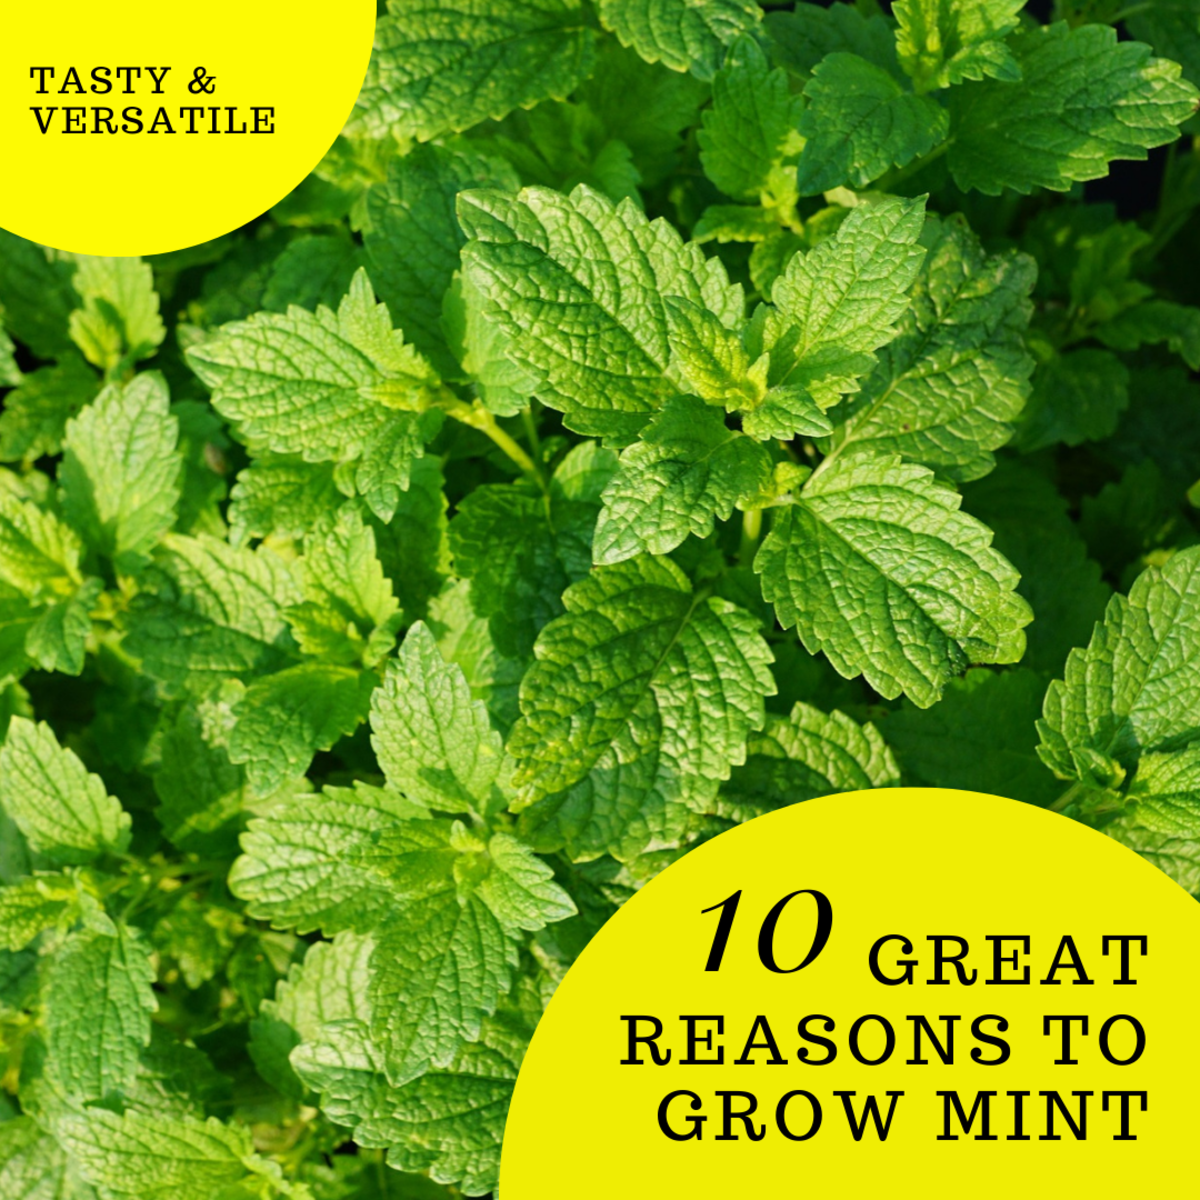 This article will provide 10 excellent reasons to grow the delicious and versatile mint plant.